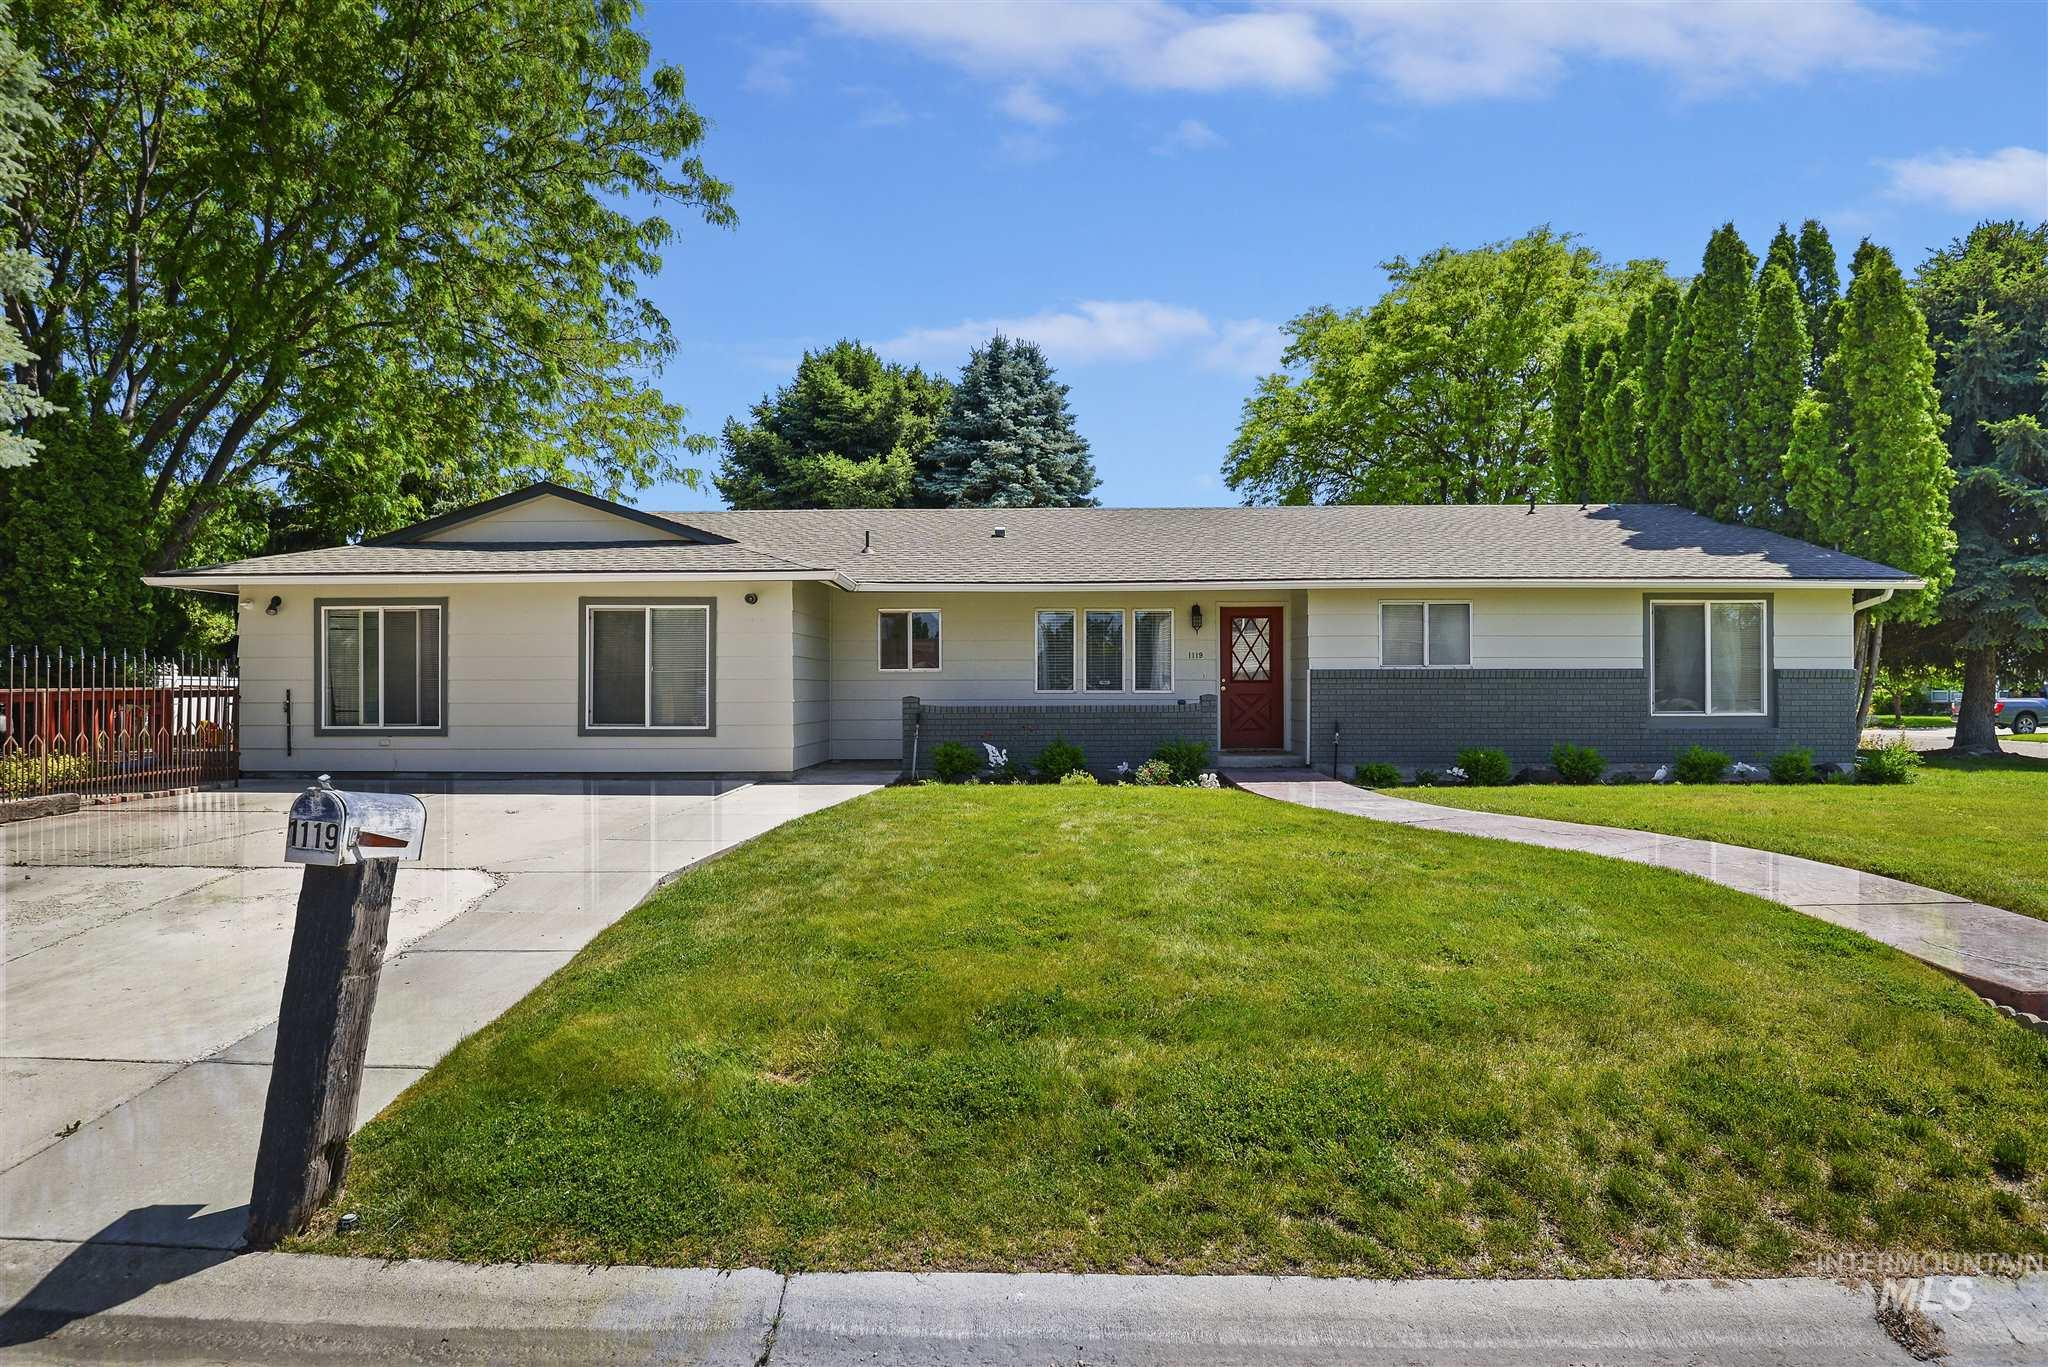 1119 W Hudson Ave., Nampa, Idaho 83651, 6 Bedrooms, 3 Bathrooms, Residential For Sale, Price $272,600, 98768742